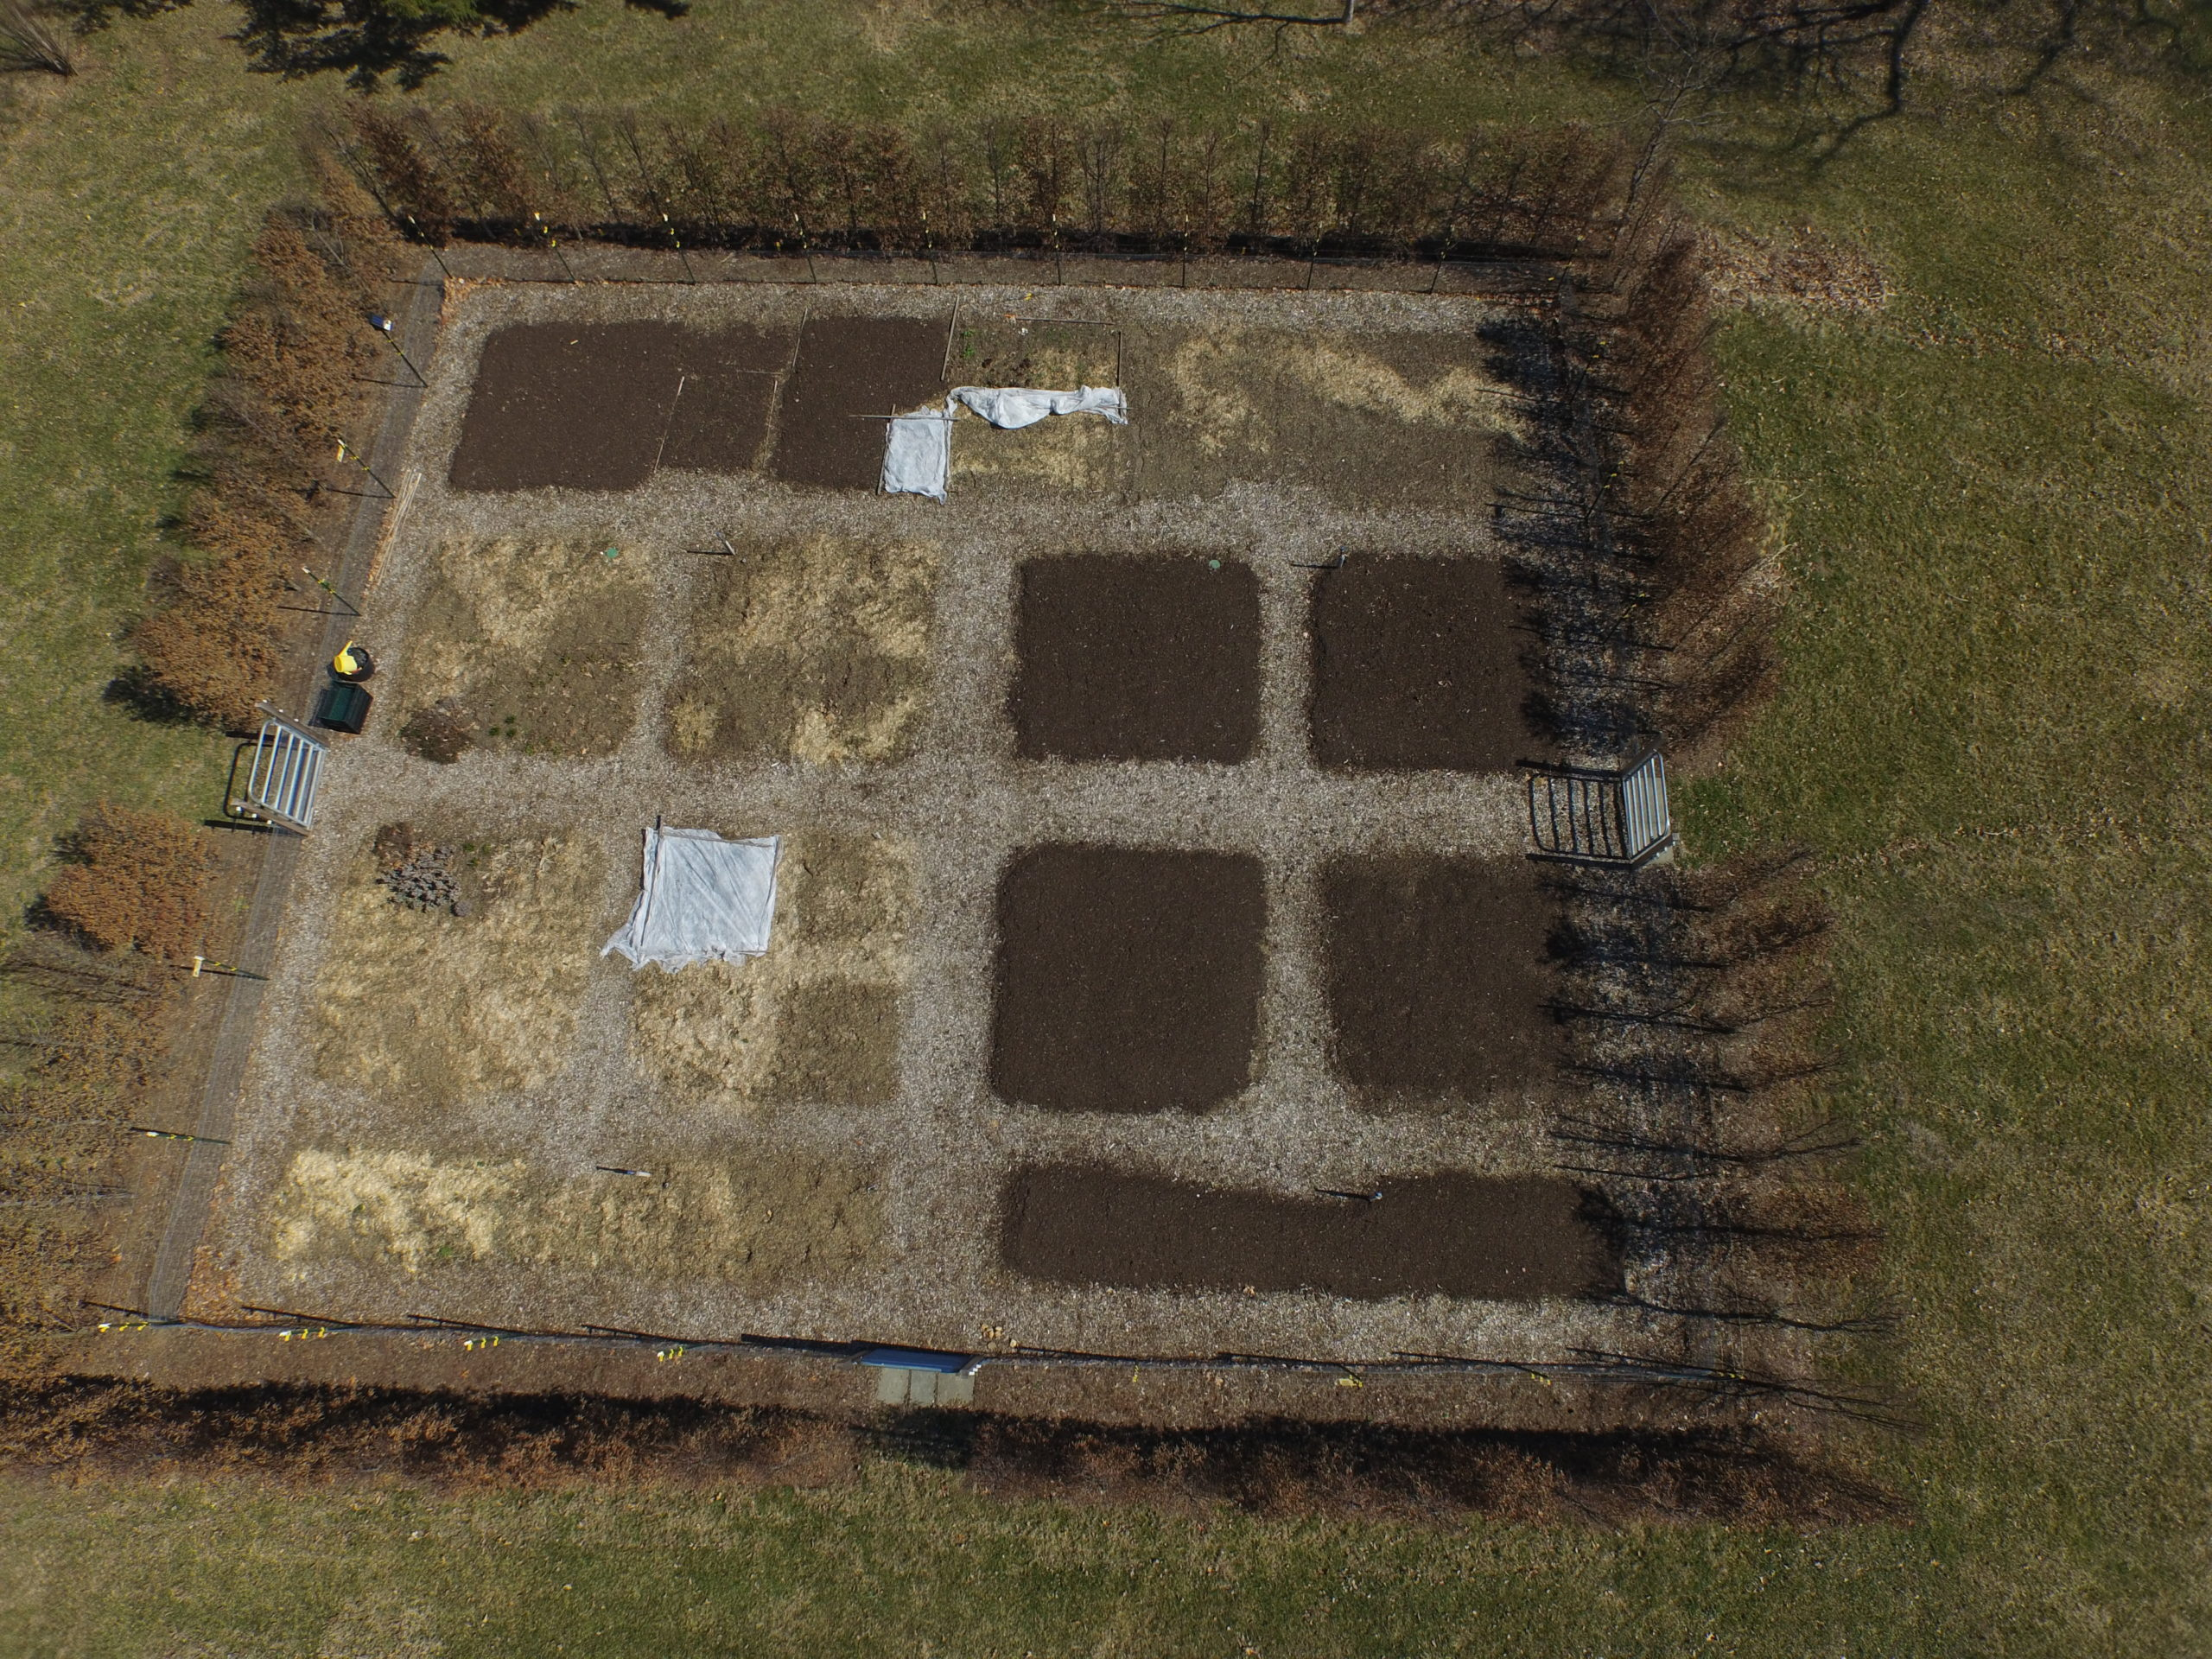 A drone's eye view of a large vegetable garden surrounded by a hornbeam hedge with an electric fence on the inside of the hedge. The bottom left bed is asparagus, which can't shade any other garden plants.  Each bed has its own trickle irrigation with hose bibs down the center aisle (top to bottom).  A better layout would have yielded more efficient use of space, but in this case